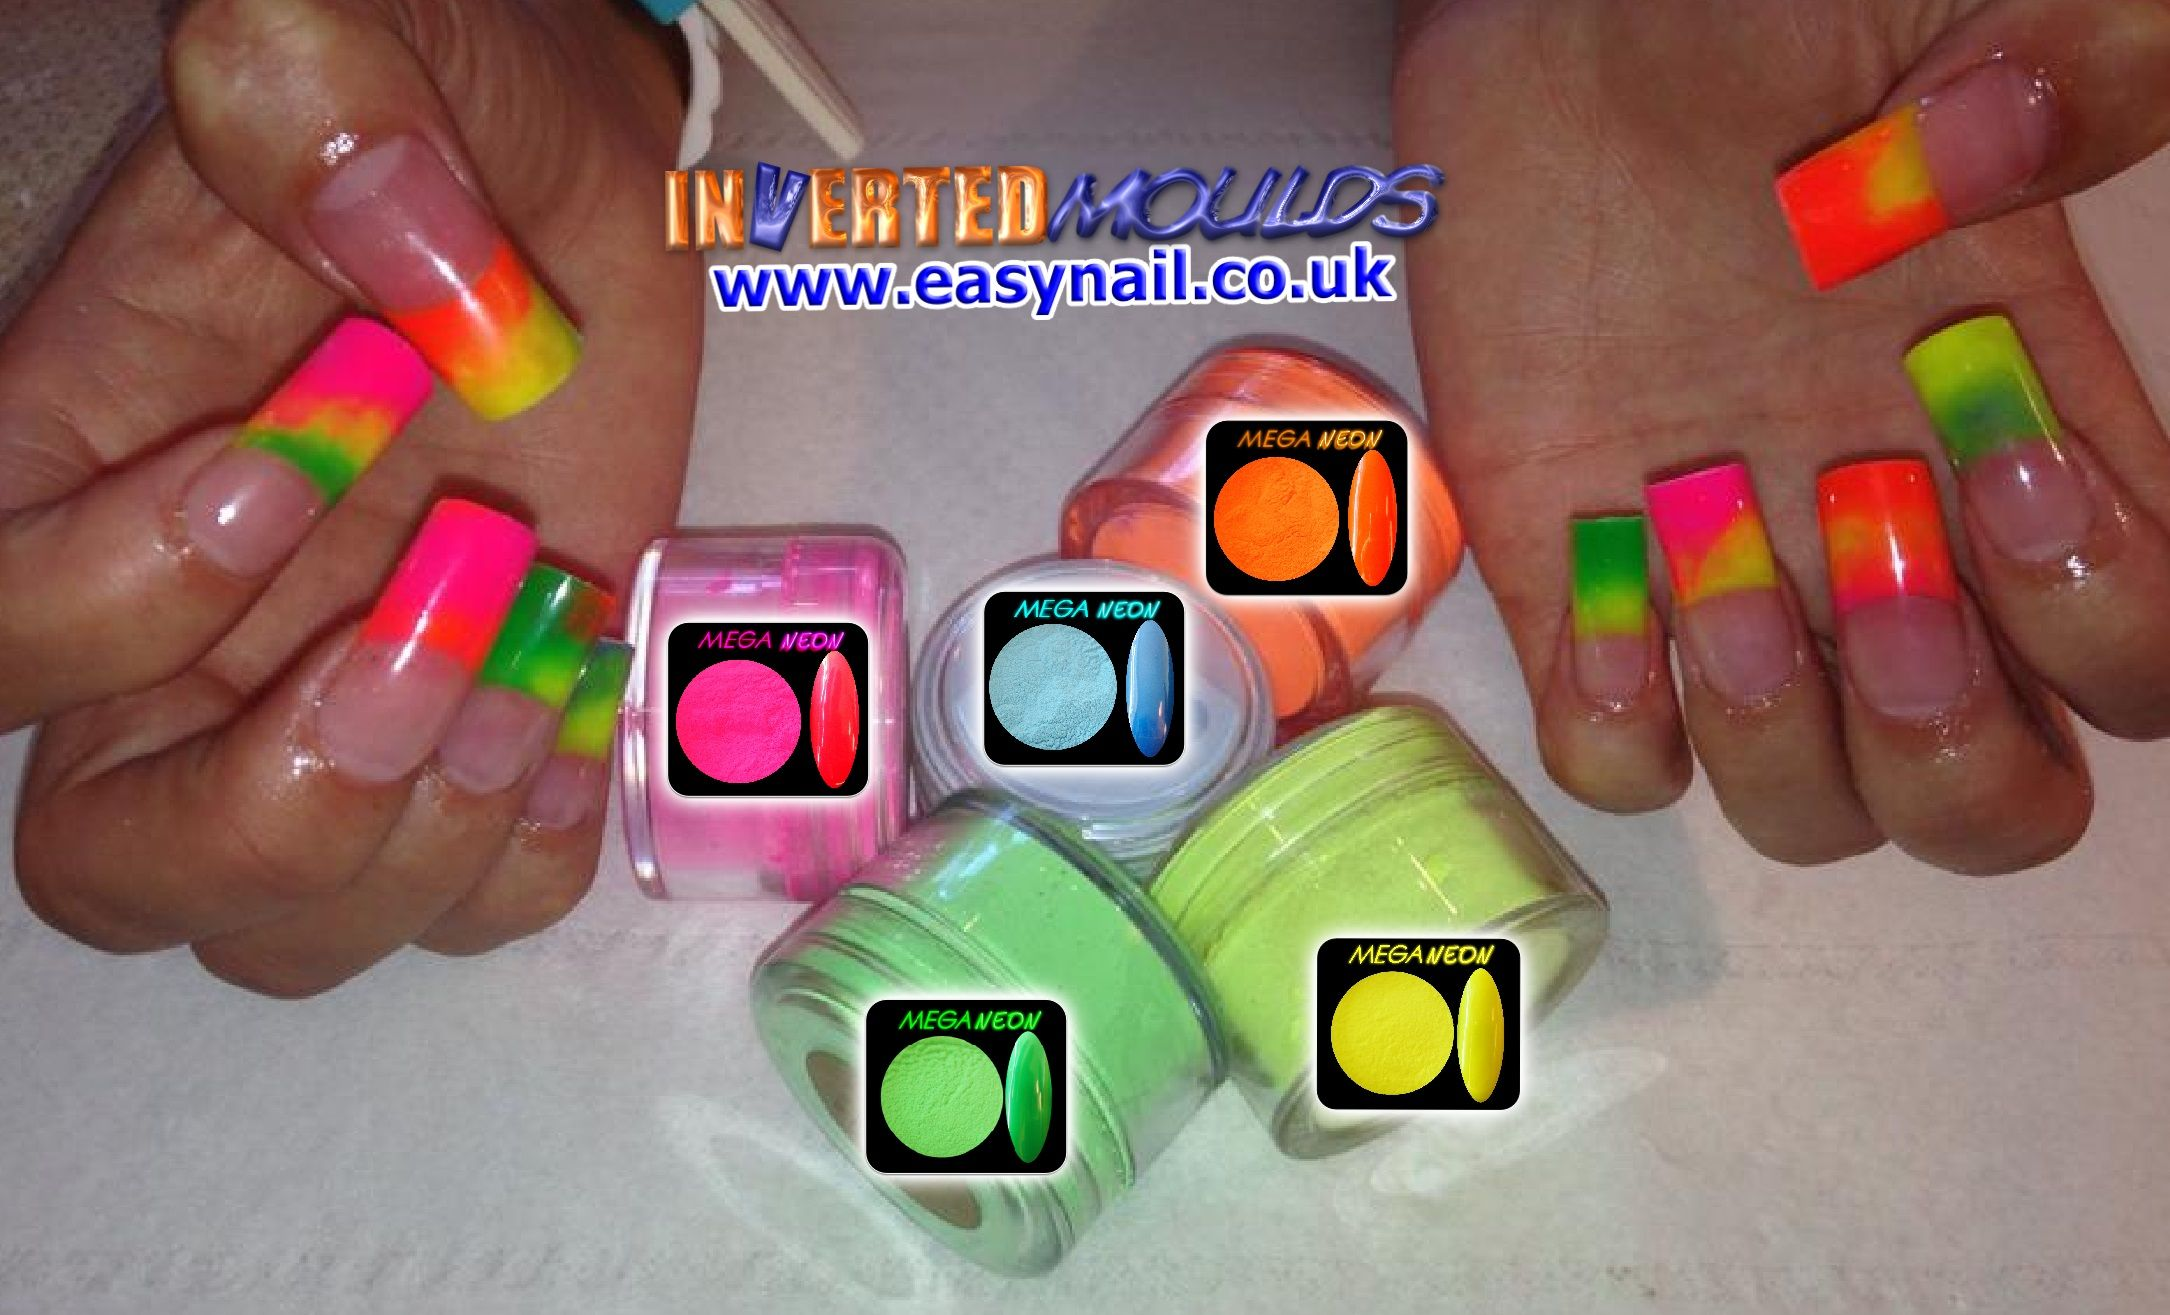 Mega Neon Acrylic Summers Specials By Karen From Shanti Nantwich